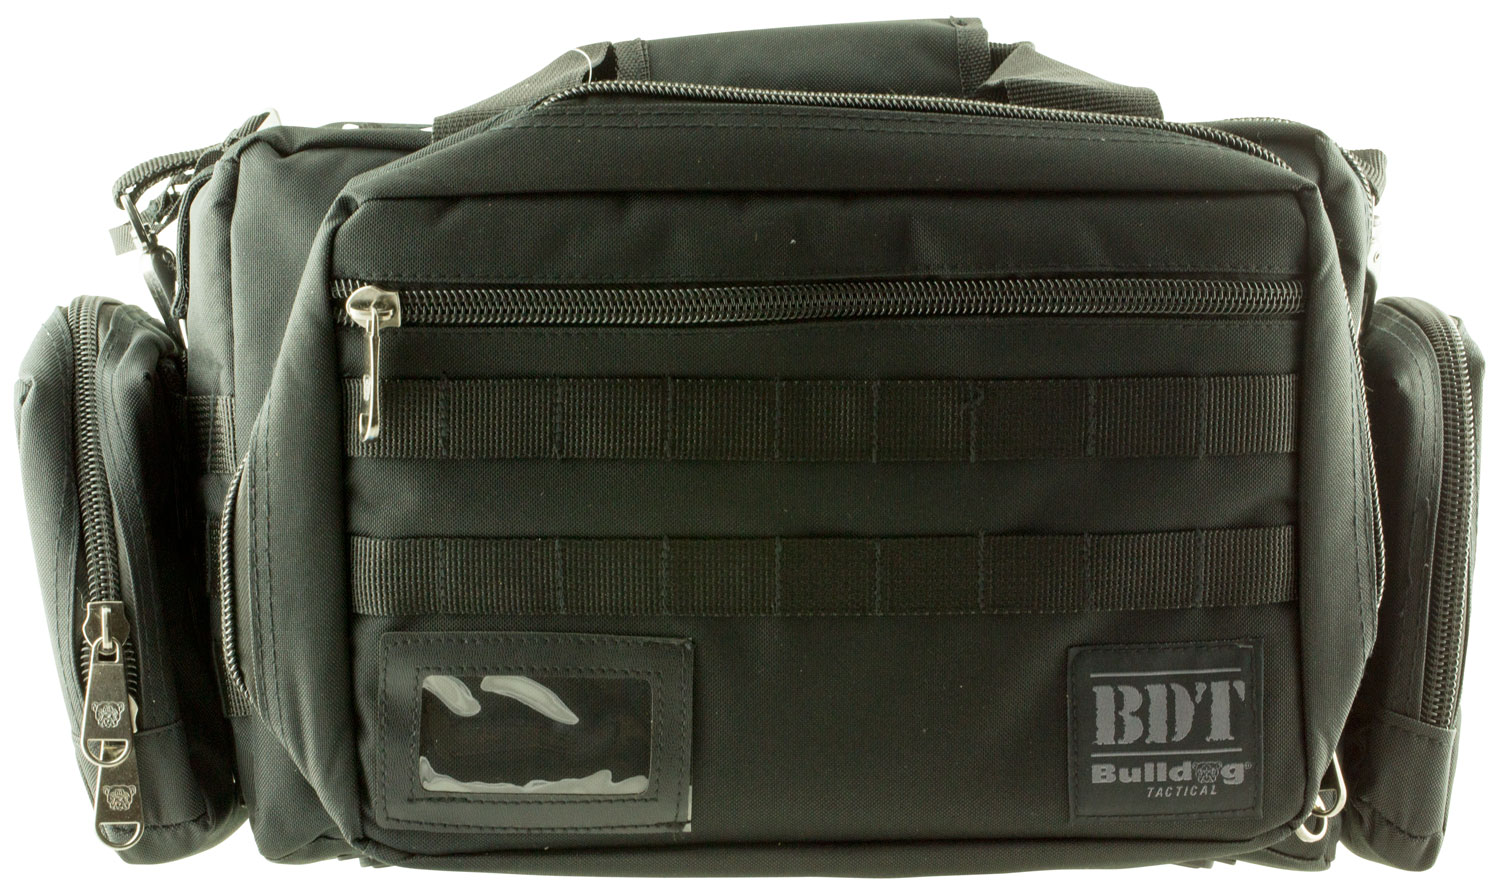 Bulldog BDT930B Tactical MOLLE Range Bag Extra Large  9